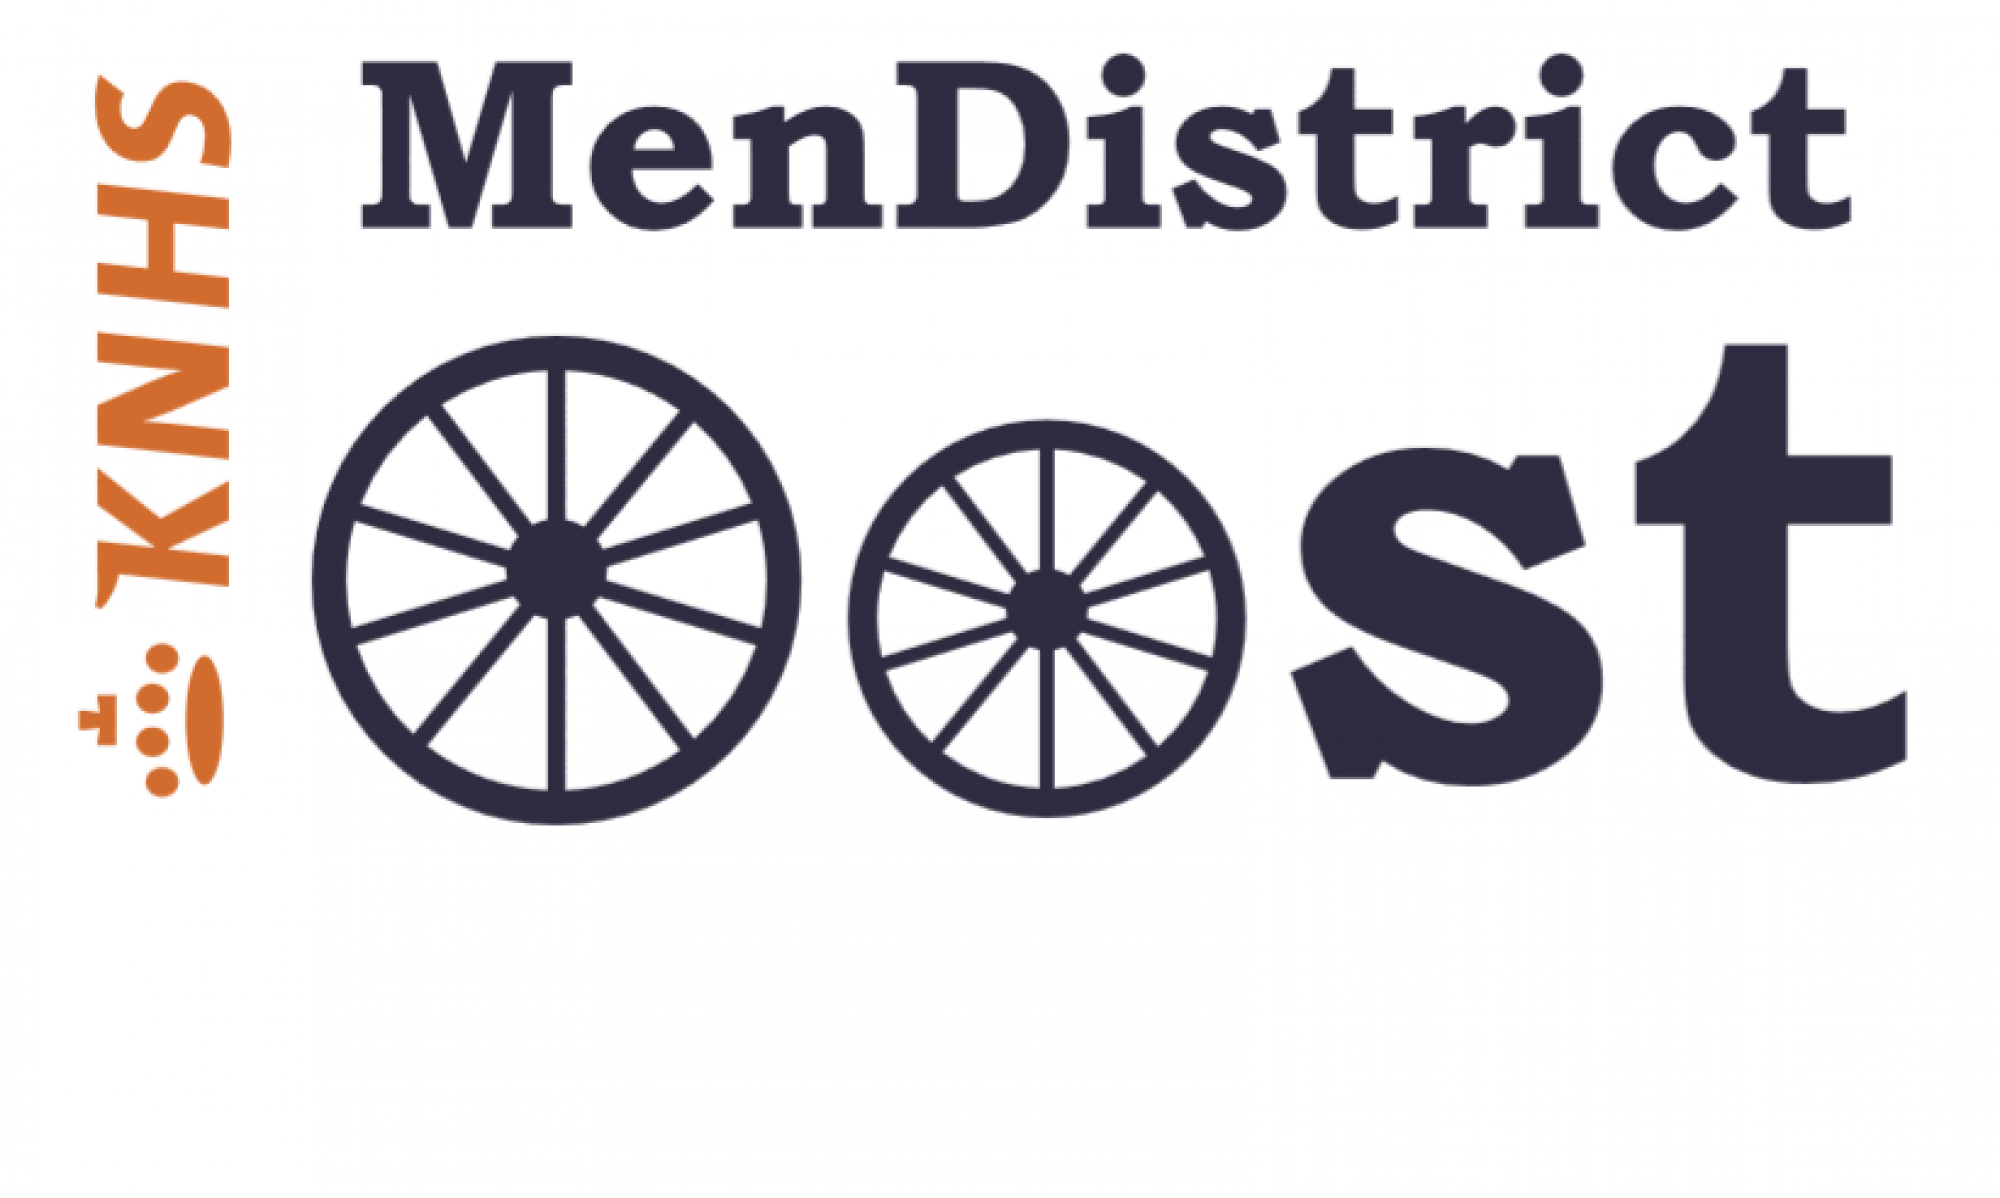 Mendistrict Oost